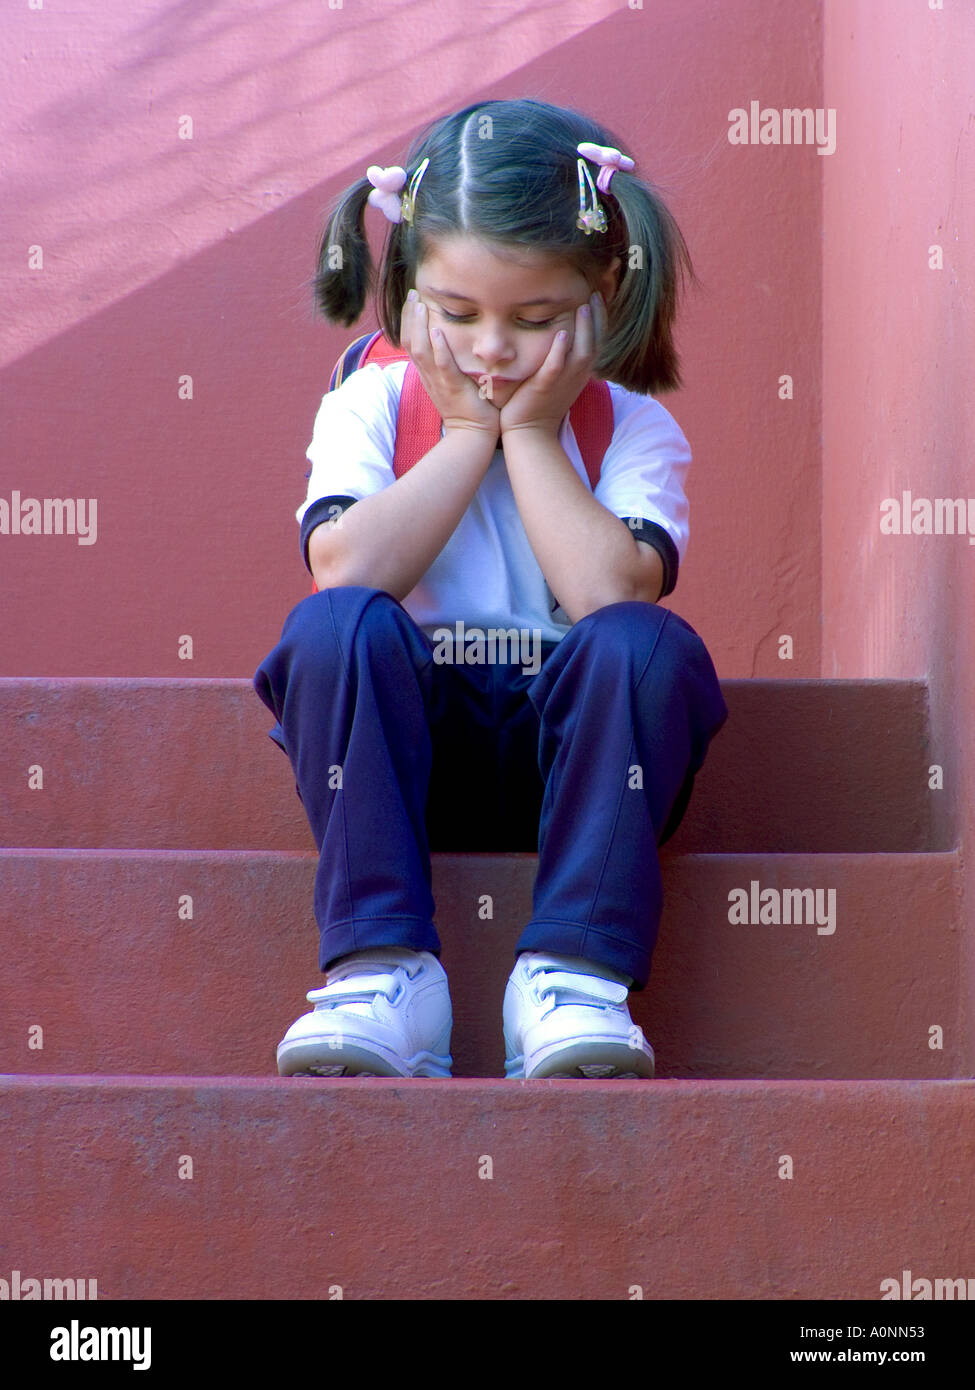 Sad Girl Sitting Alone Outside Stock Photos Sad Girl: School Girl Lonely Stock Photos & School Girl Lonely Stock